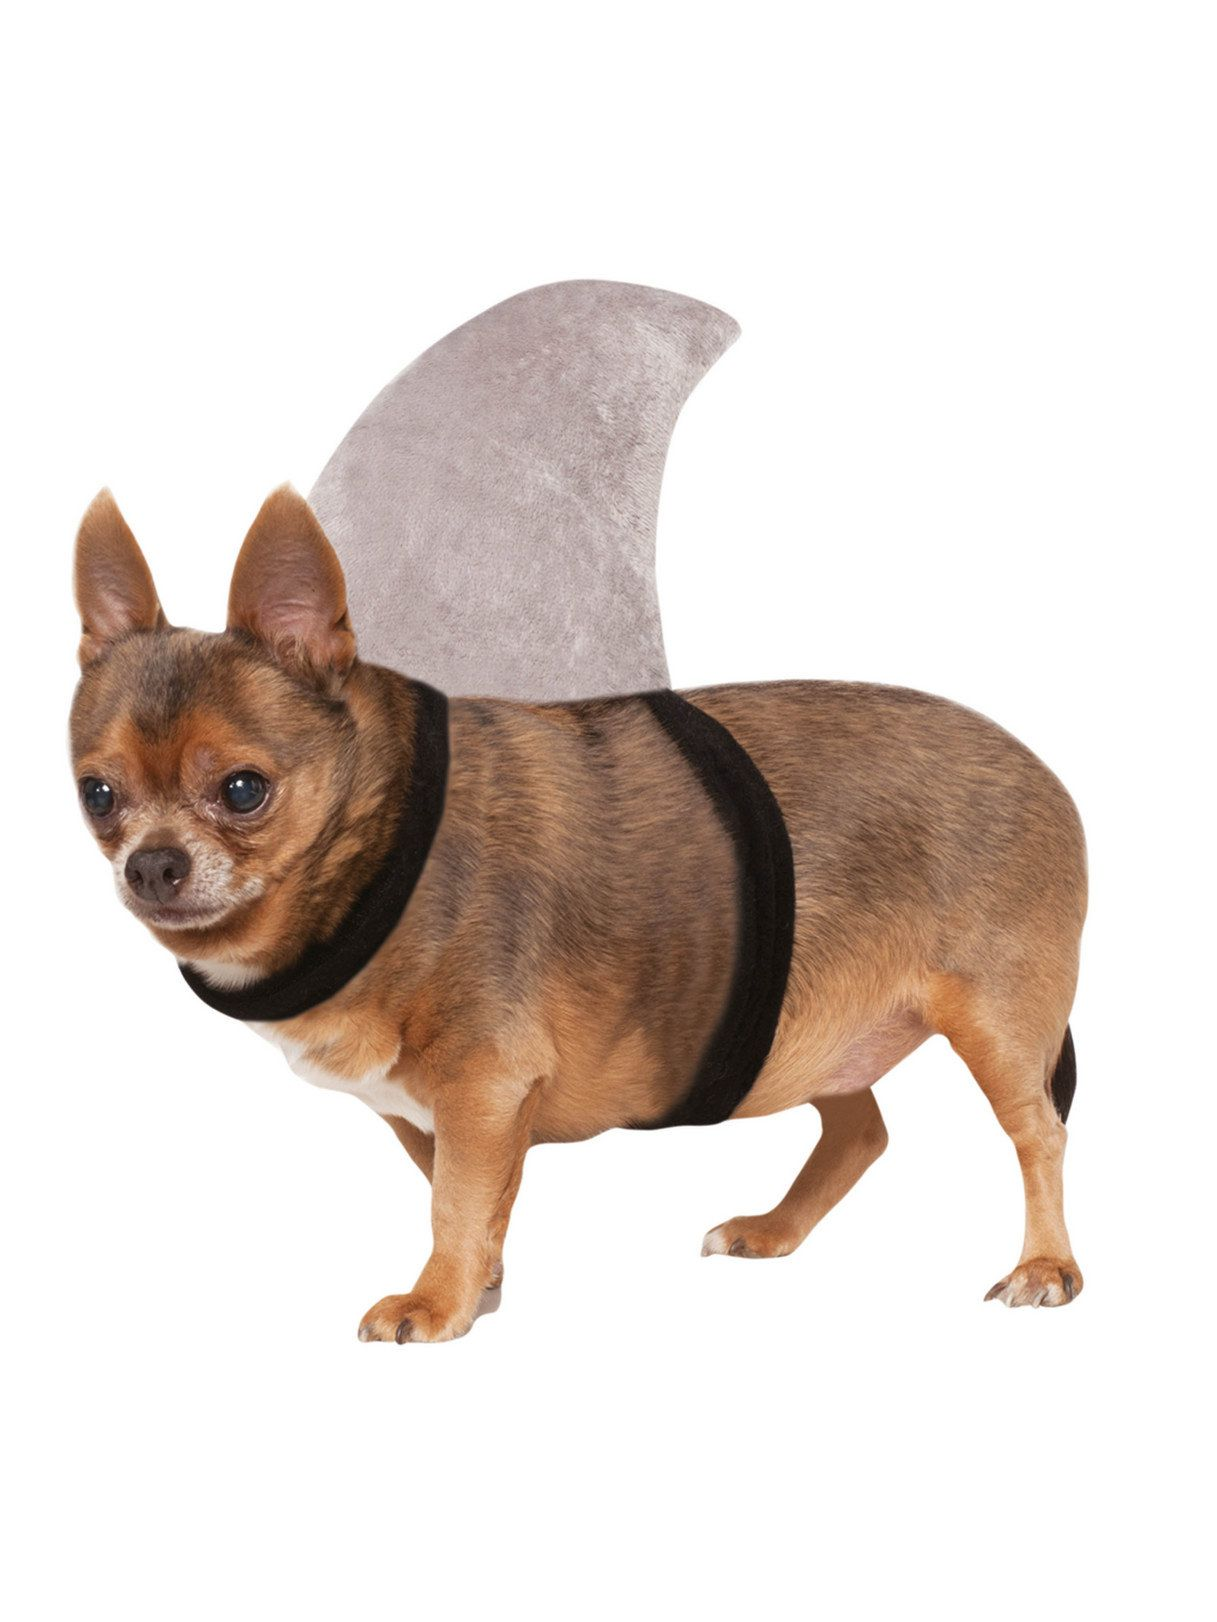 New Arrival  sc 1 st  Wholesale Halloween Costumes & Shark Fin Costume for Pet - Dog and Cat Costumes for 2018 ...